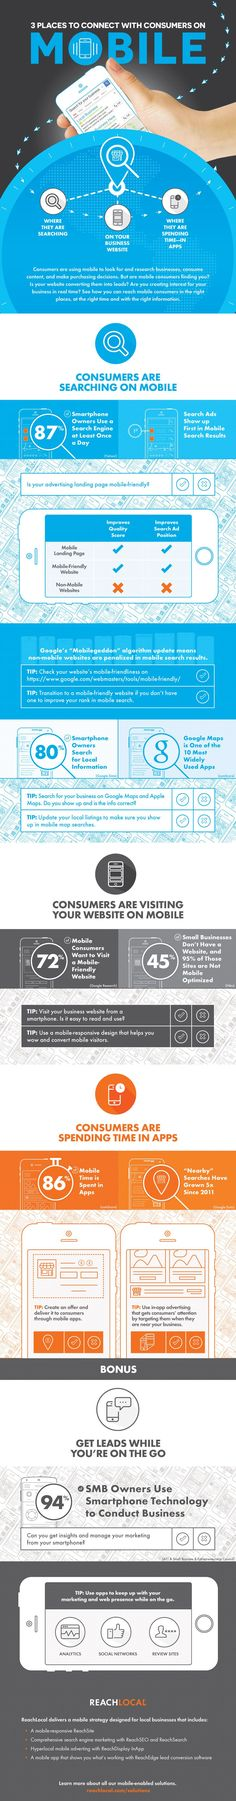 3 Places Small Businesses Can Connect with Consumers on Mobile - #Infographic #marketing